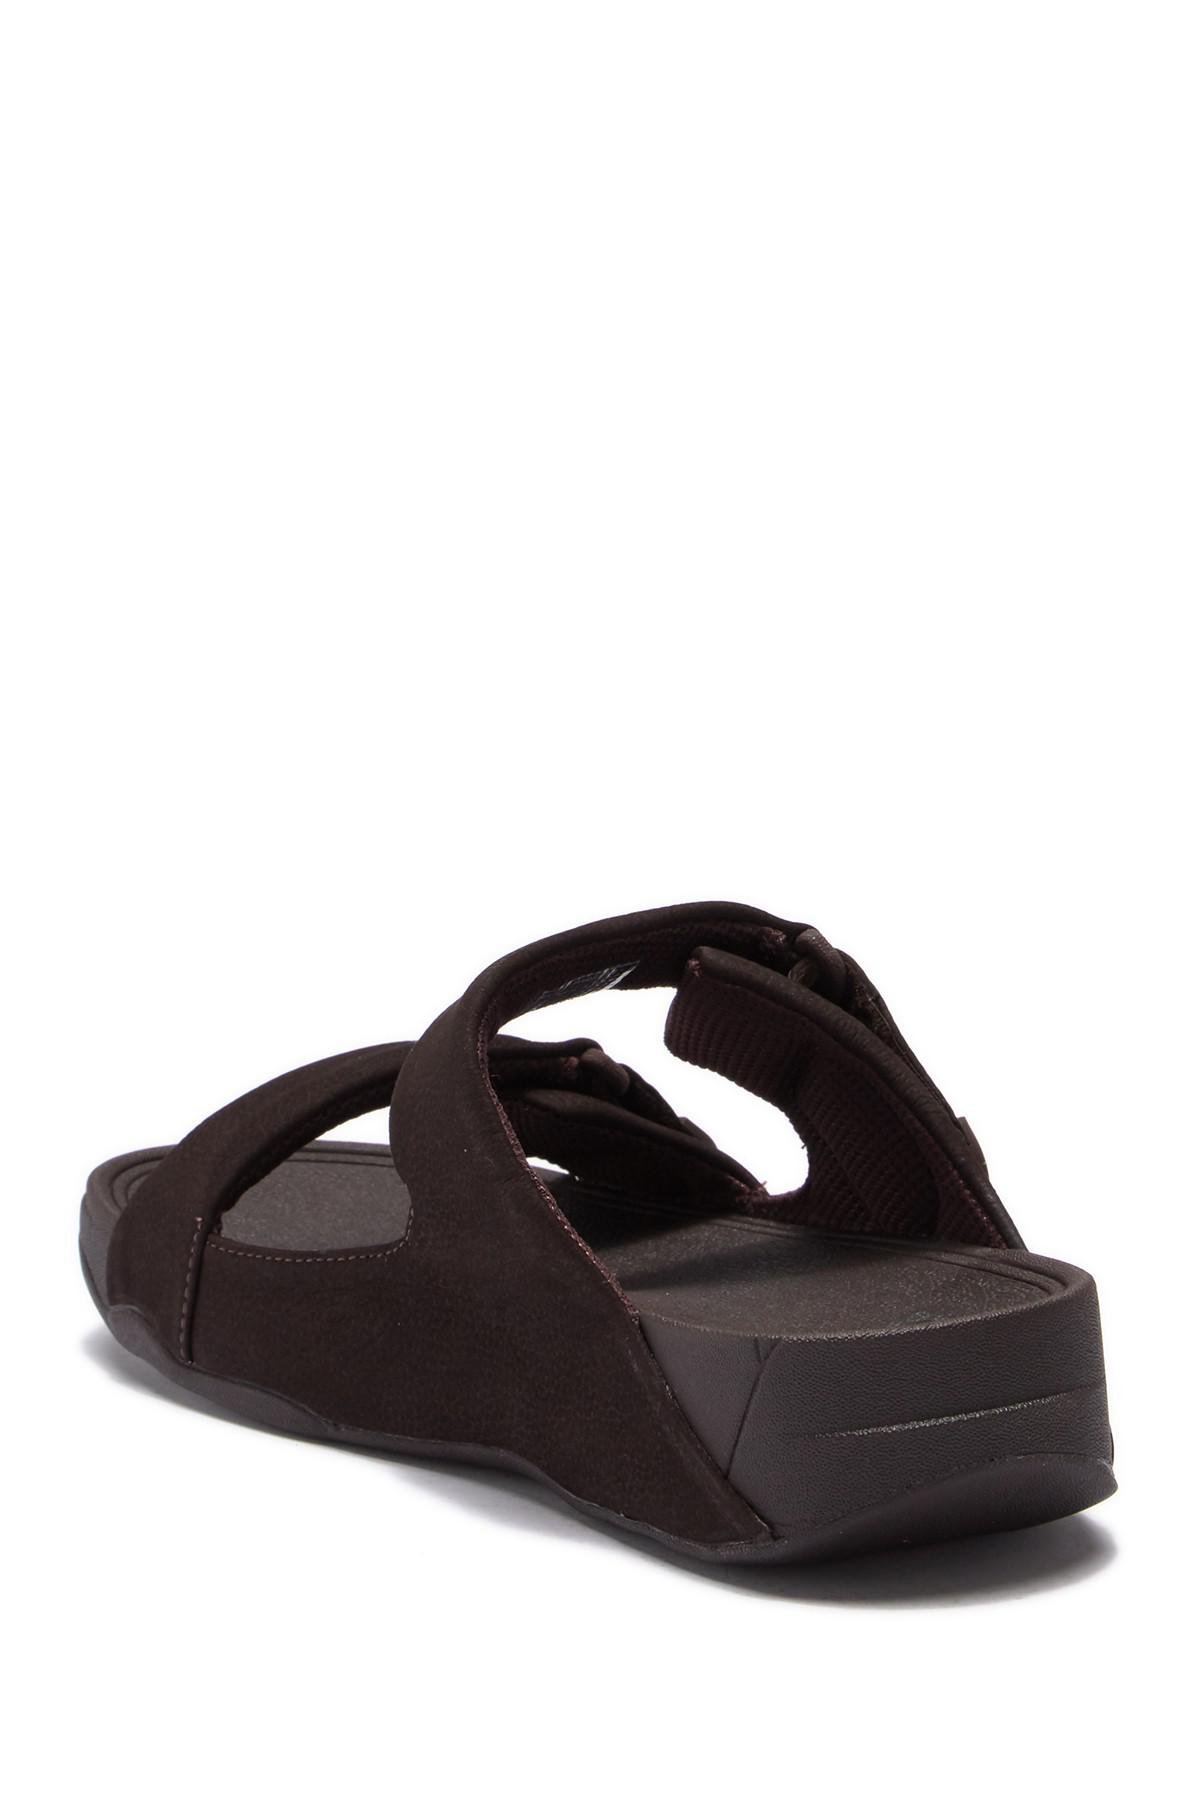 7924608cad3 Fitflop - Brown Gogh Moc Adjustable  s Slide Sandals for Men - Lyst. View  fullscreen